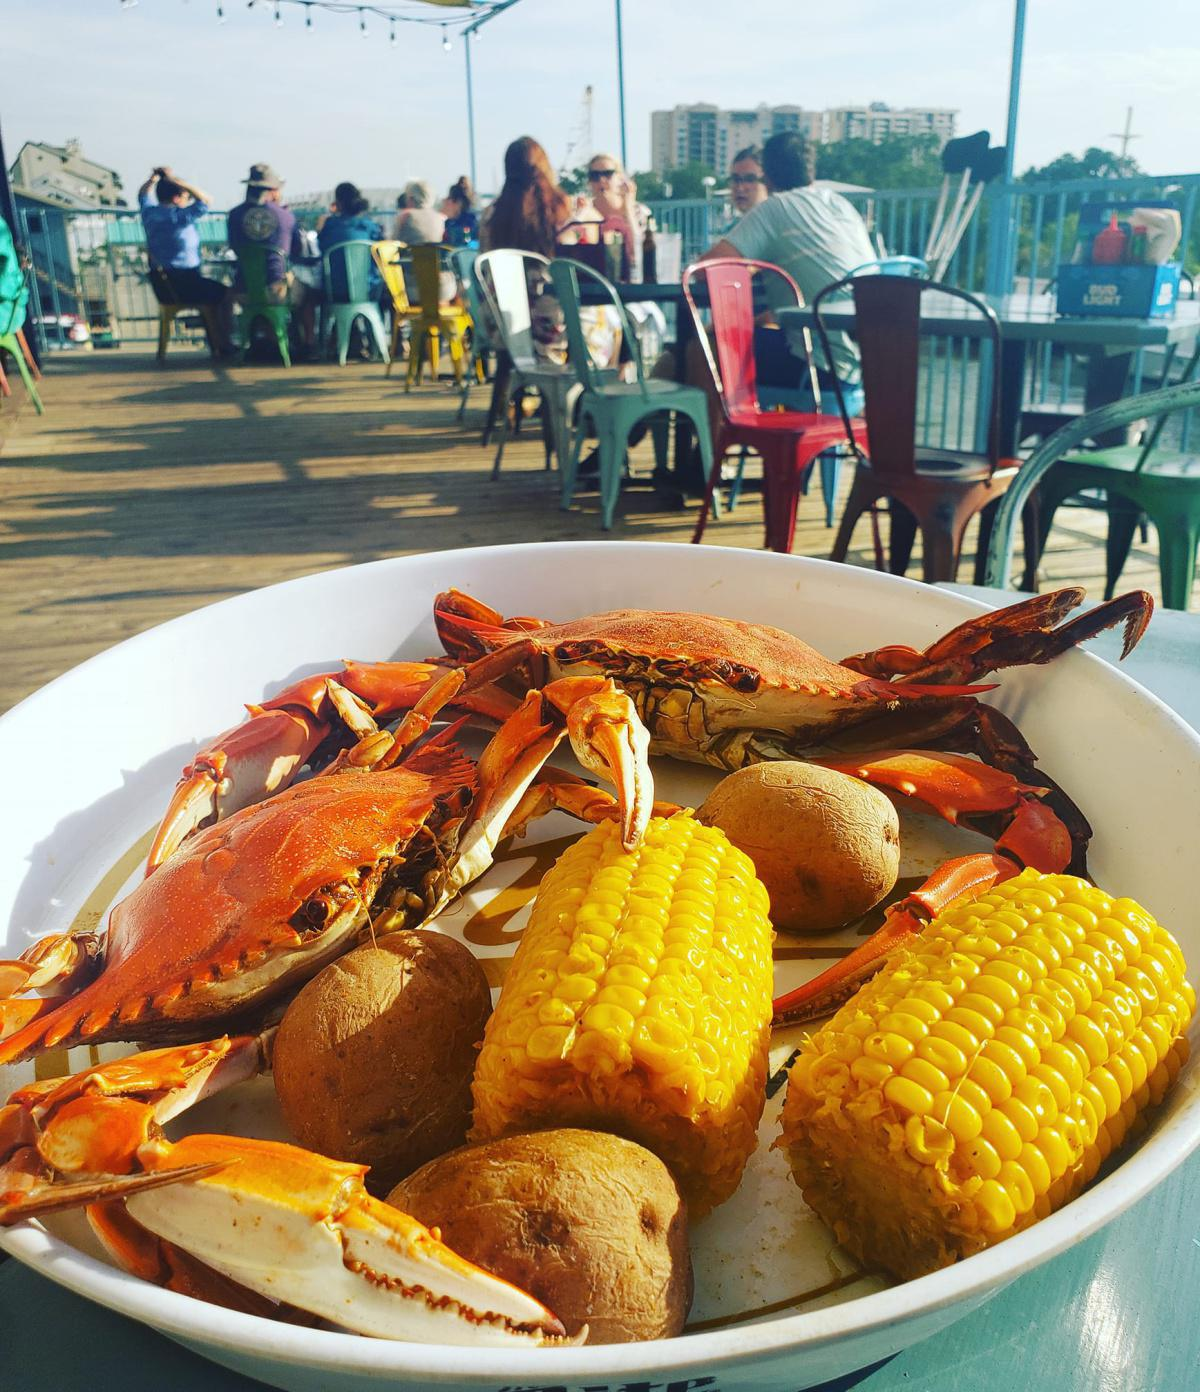 The Blue Crab Restaurant and Oyster Bar